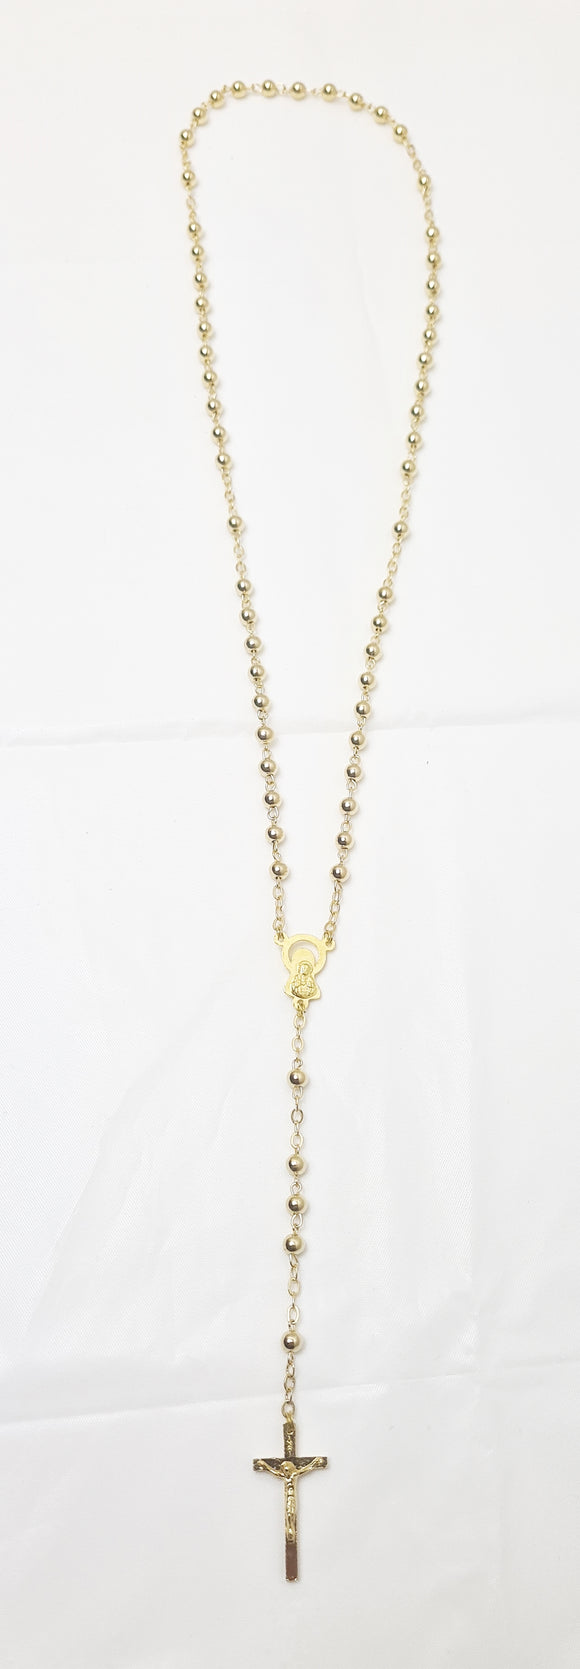 Gold and Silver Italian handmade Rosary